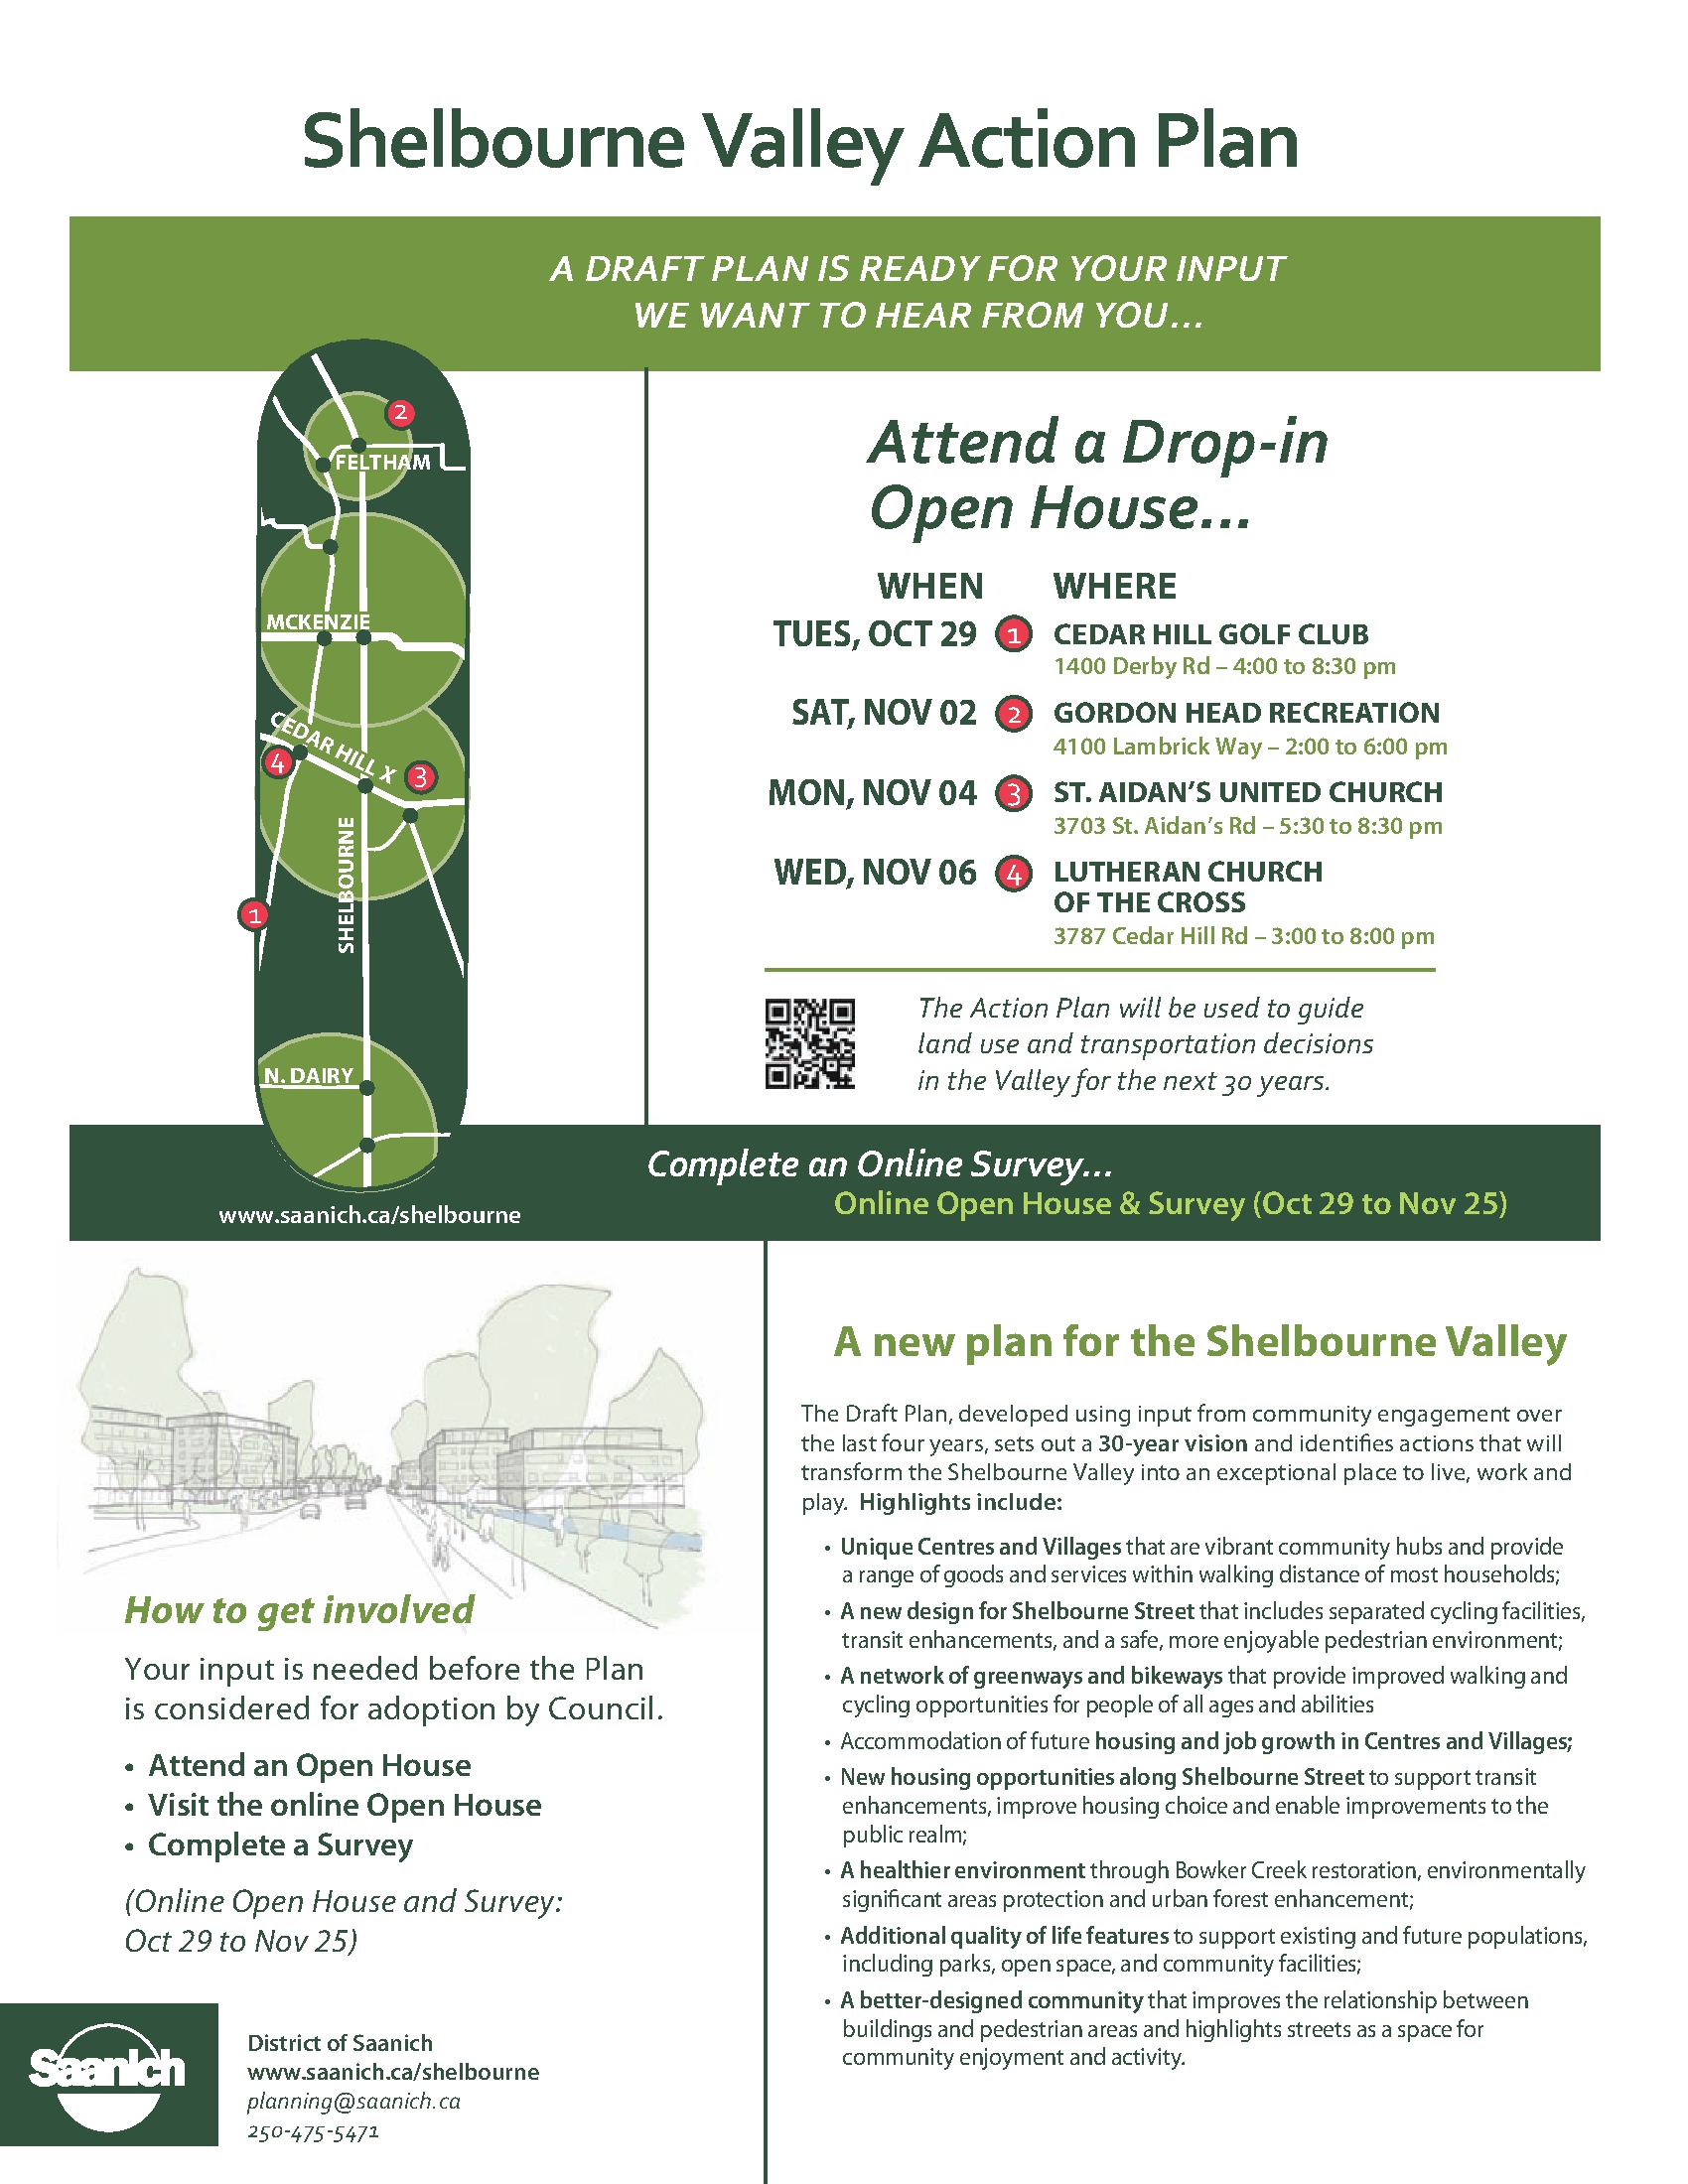 Shelbourne Valley Action Plan open houses | Camosun Community ...